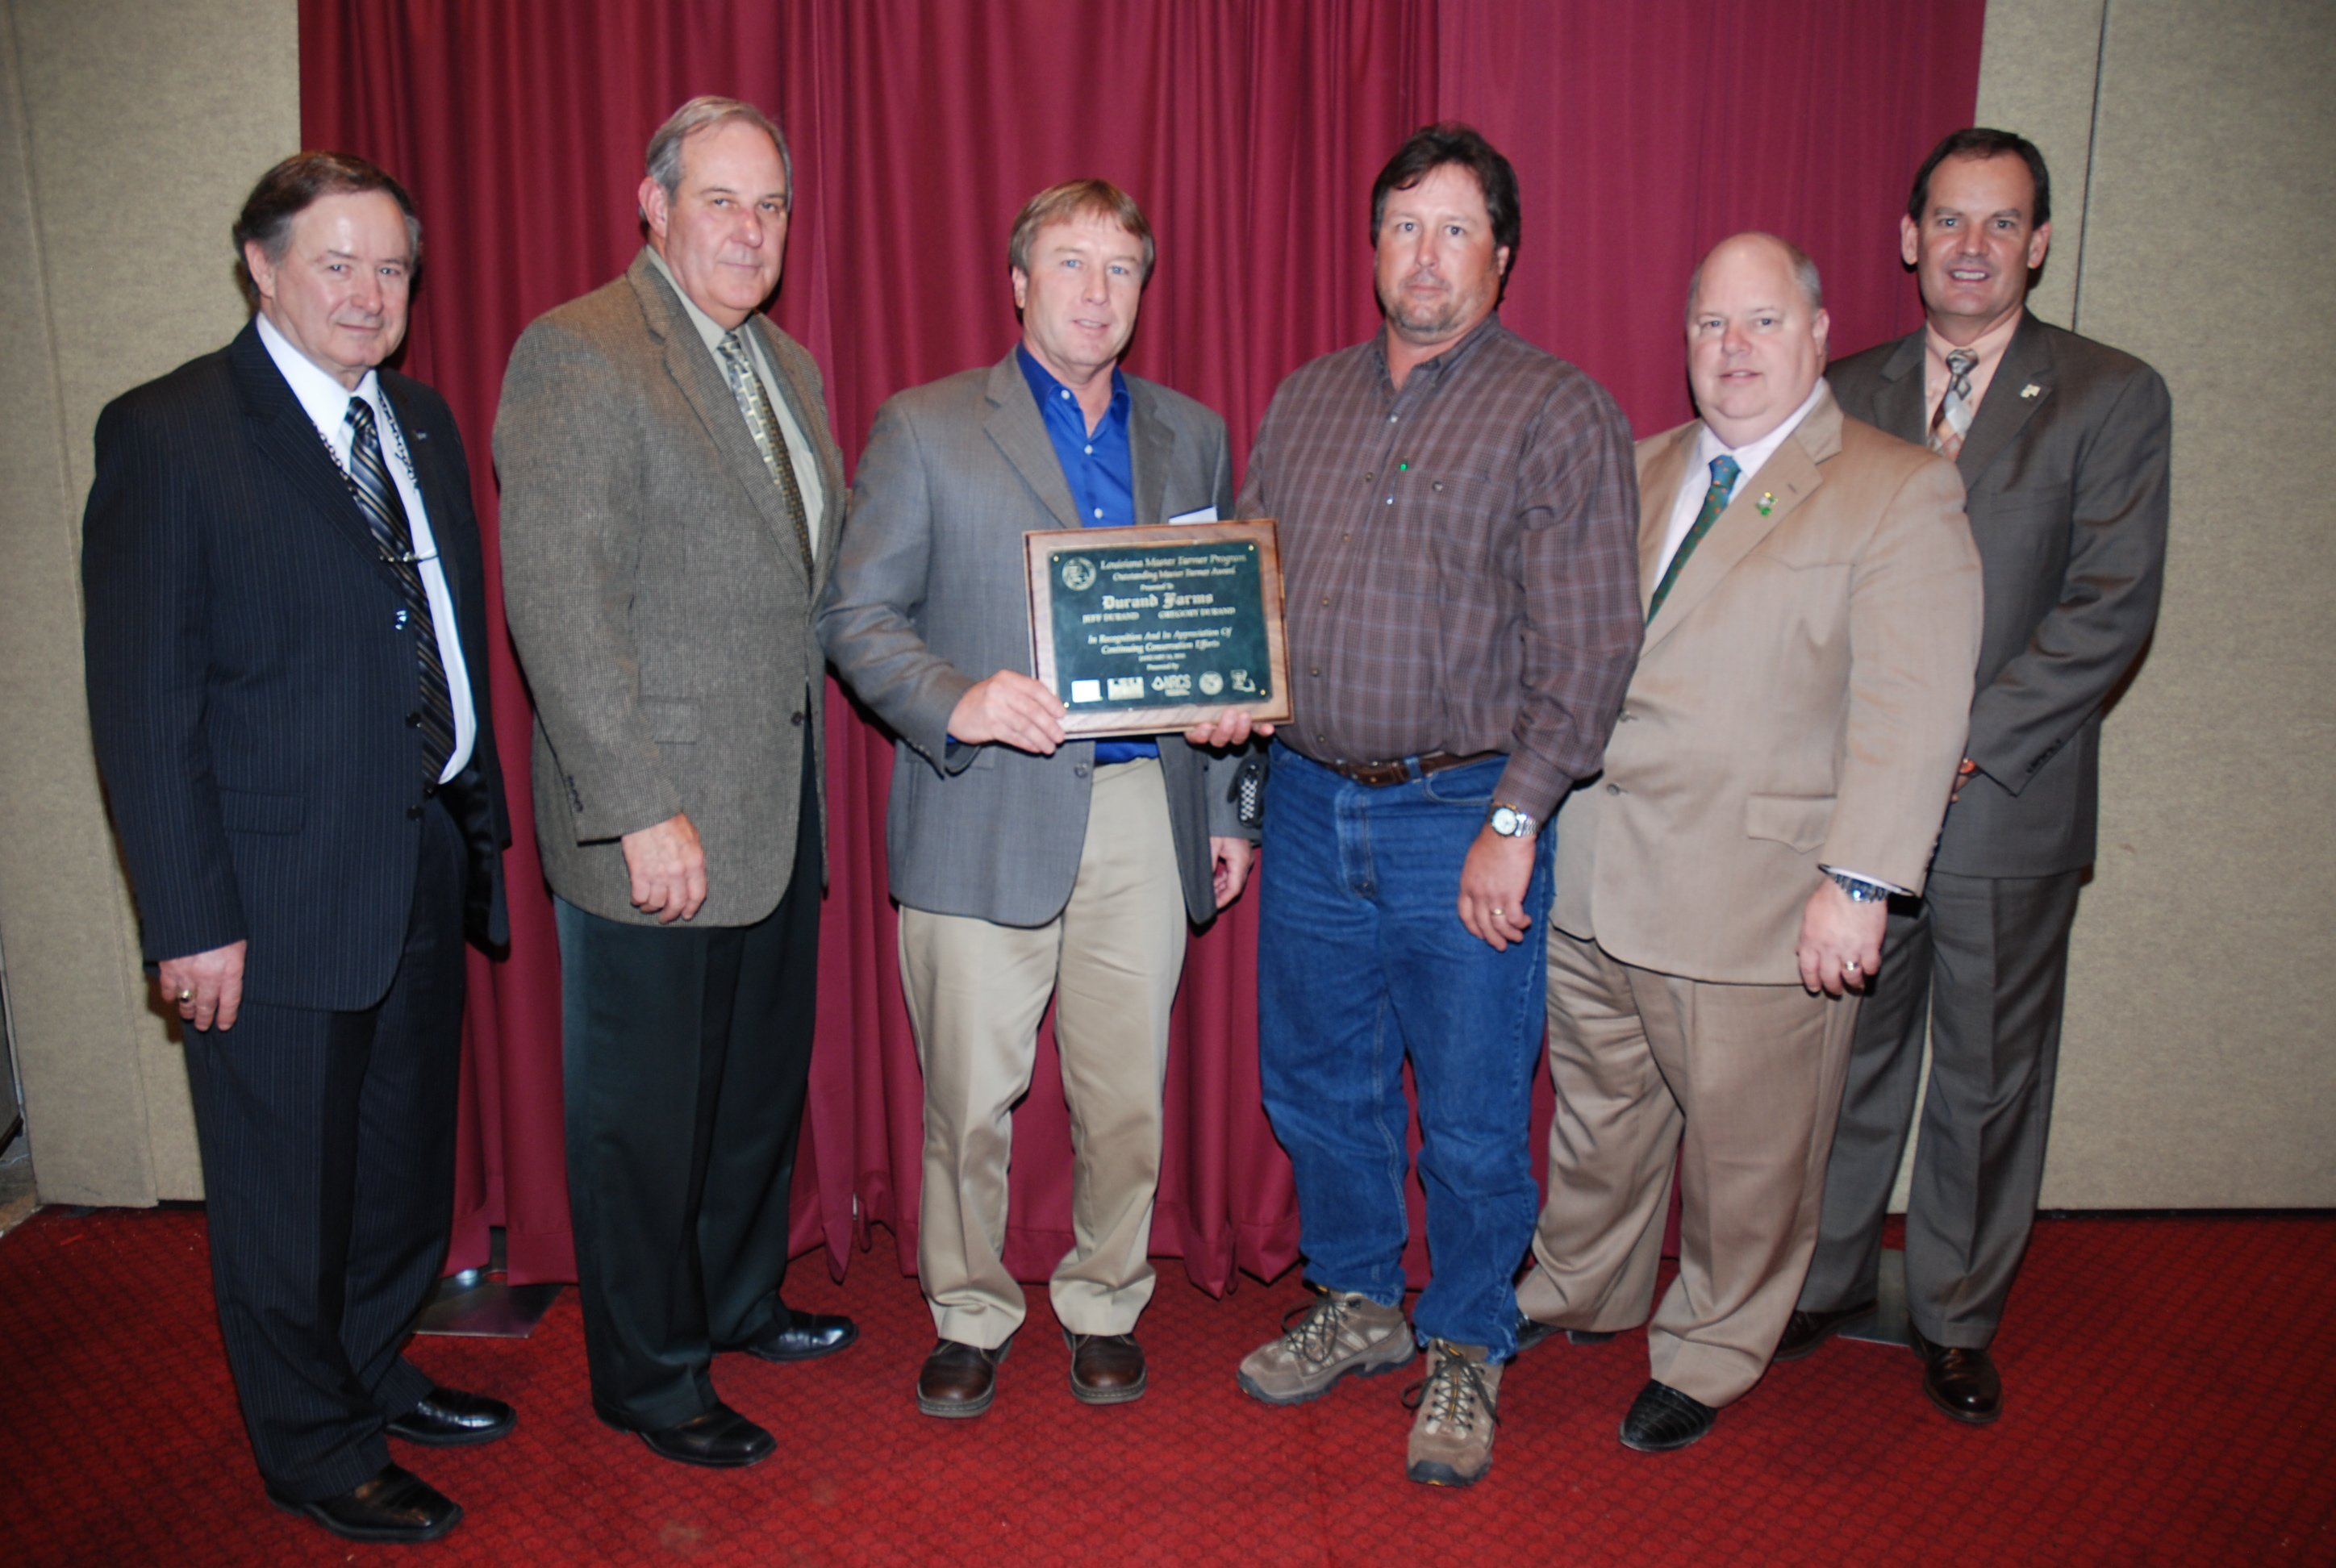 23 agricultural producers recognized as master farmers